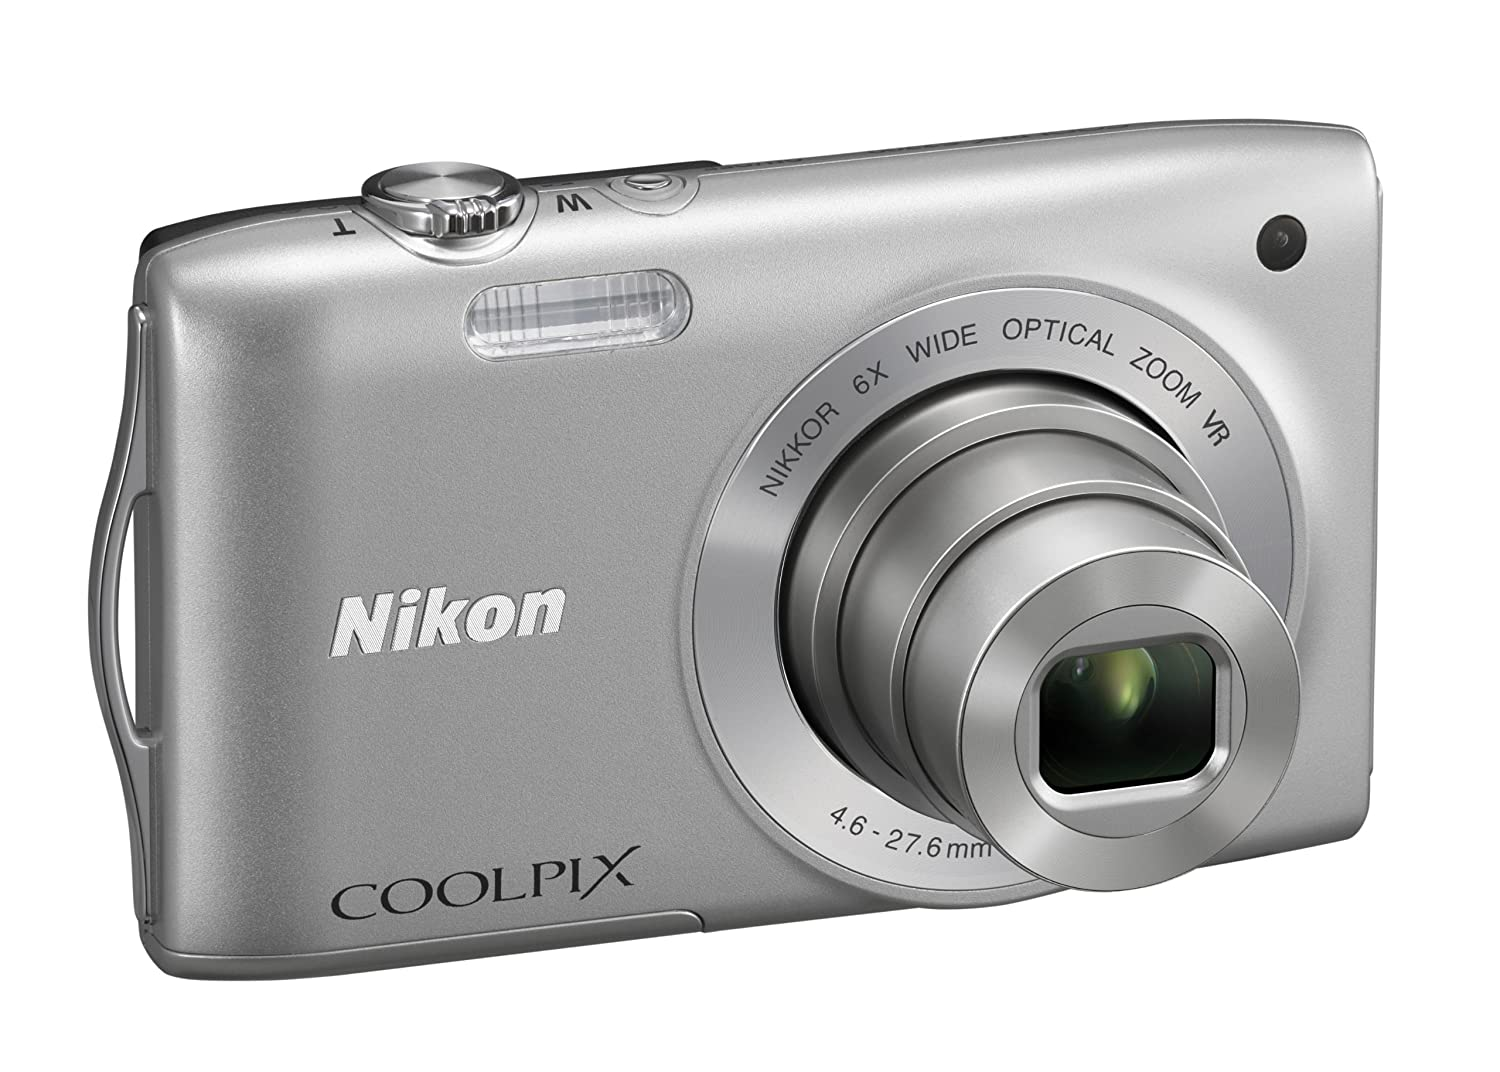 Best Selling Nikon COOLPIX Cameras 2013